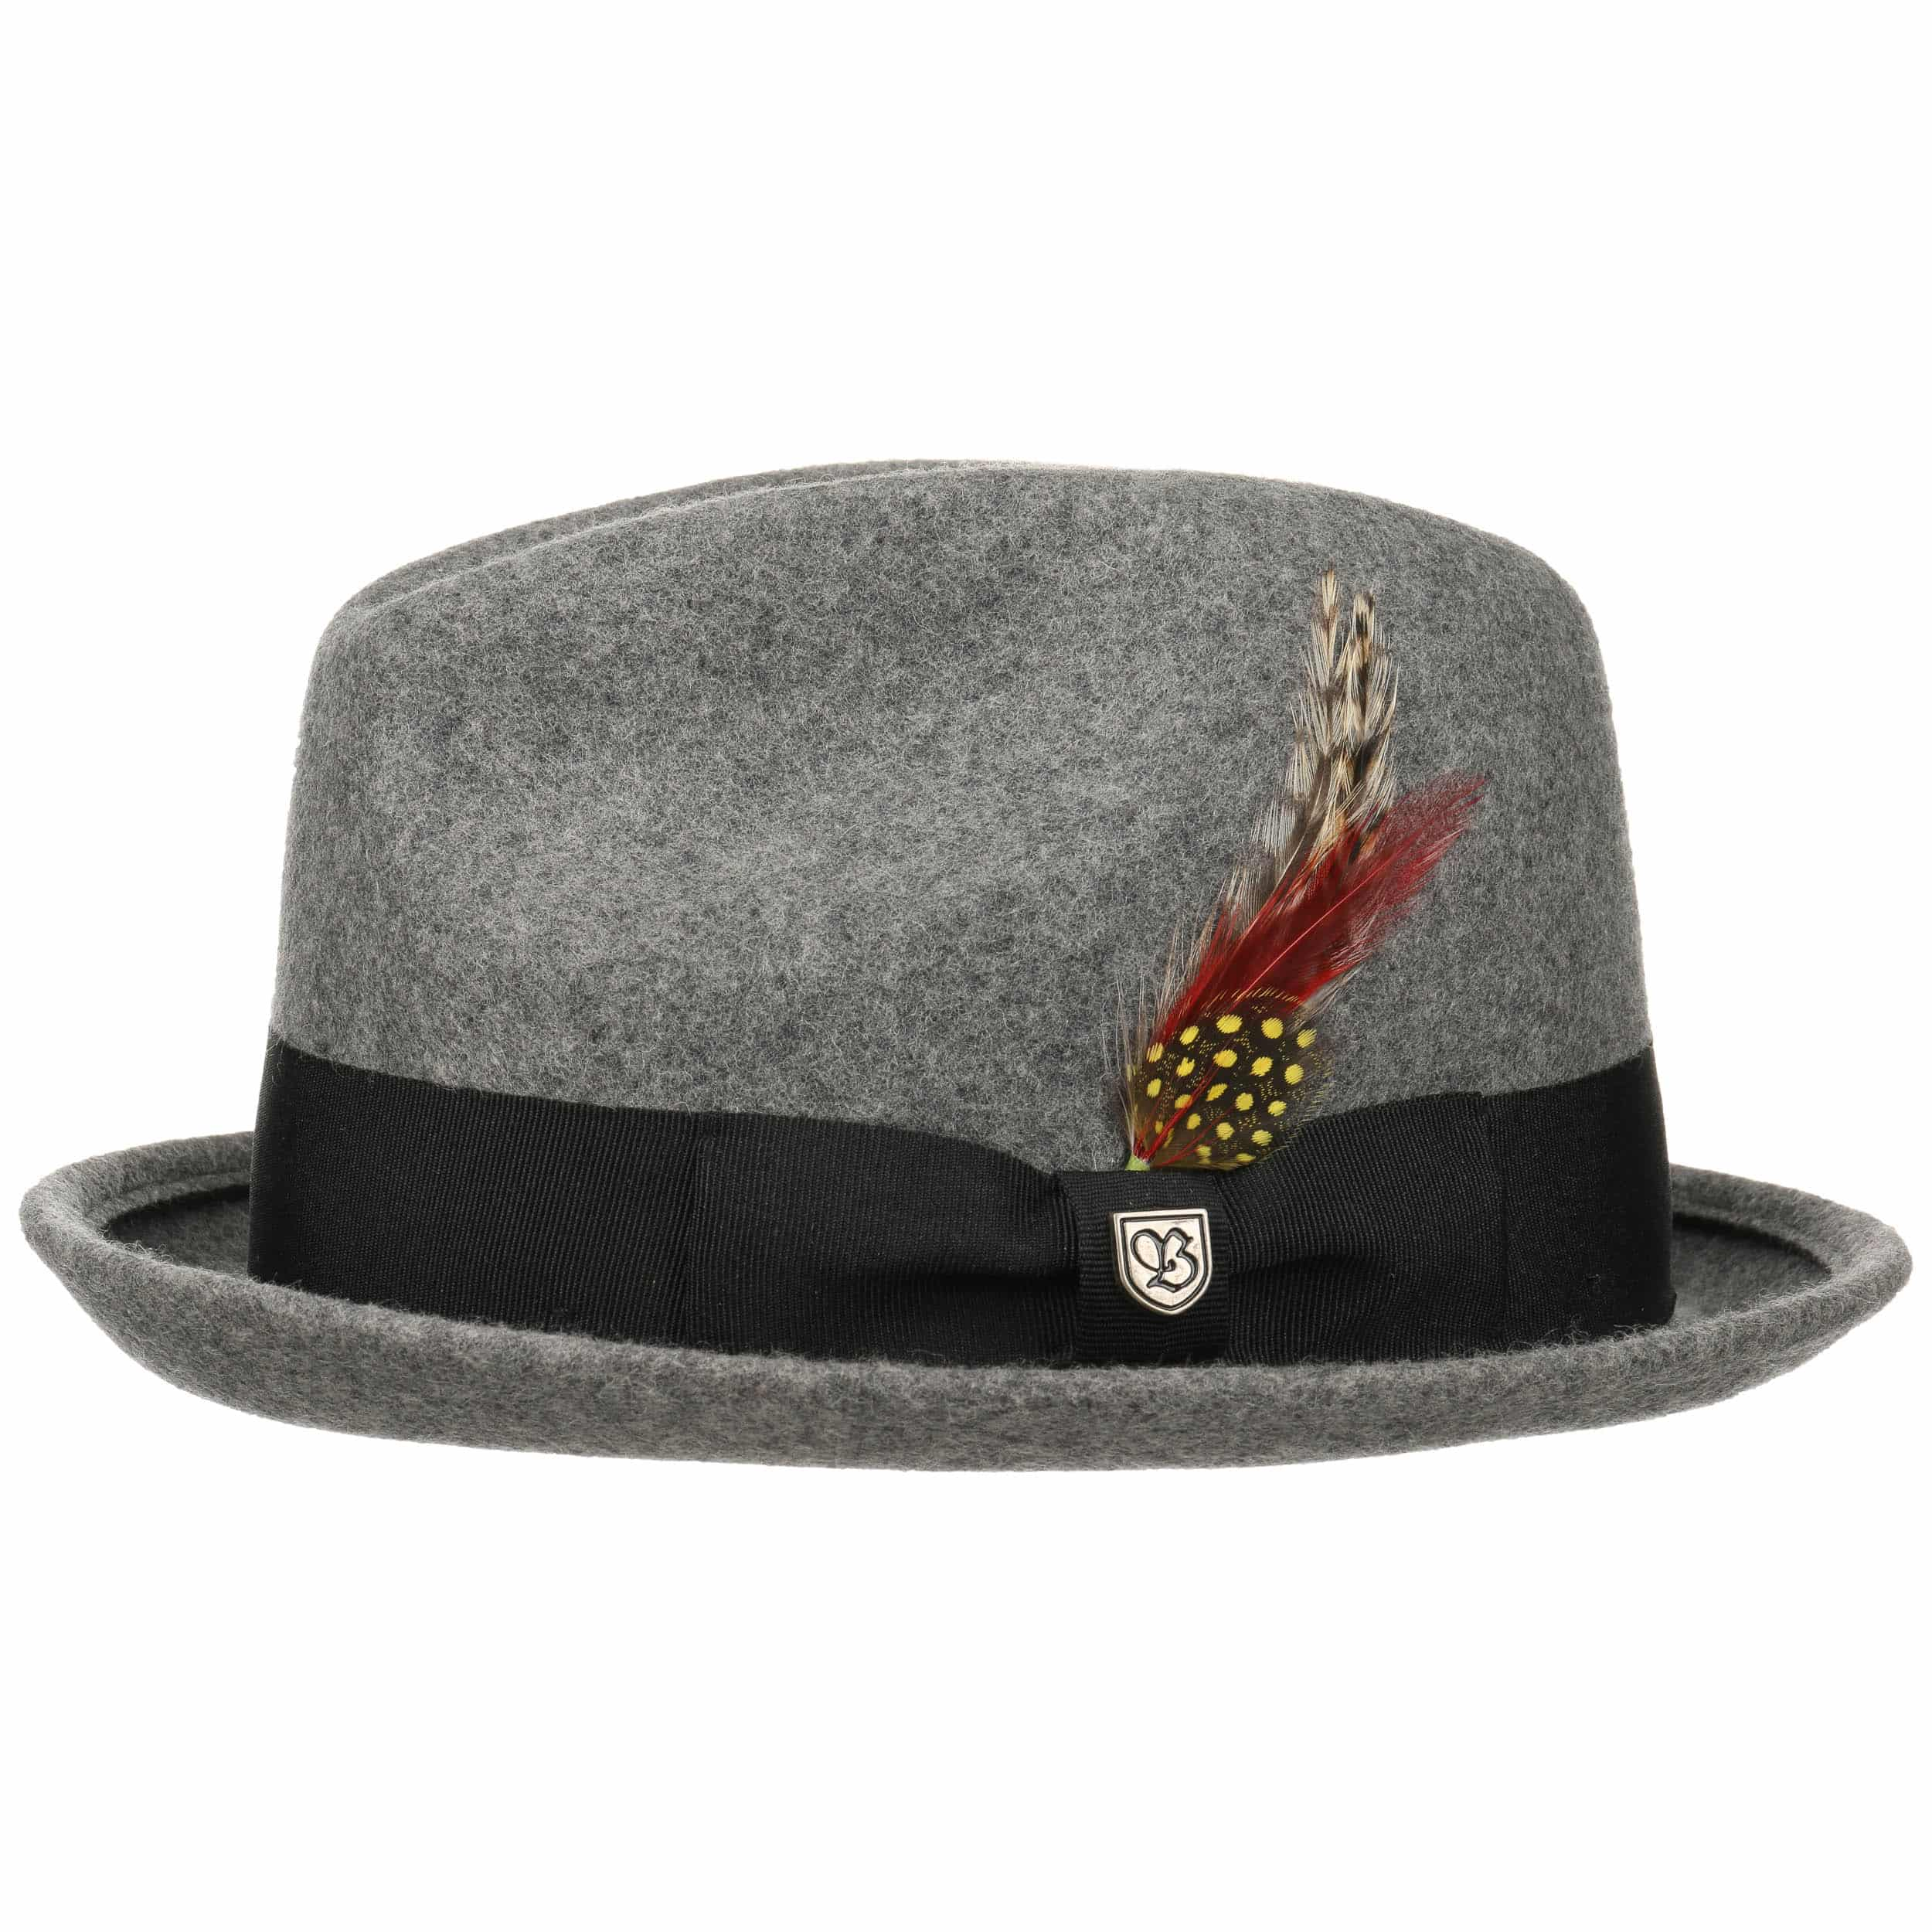 8b41eea2b7a3 Gain Wool Player Hat by Brixton, GBP 72,95 --  Hats, caps   beanies ...